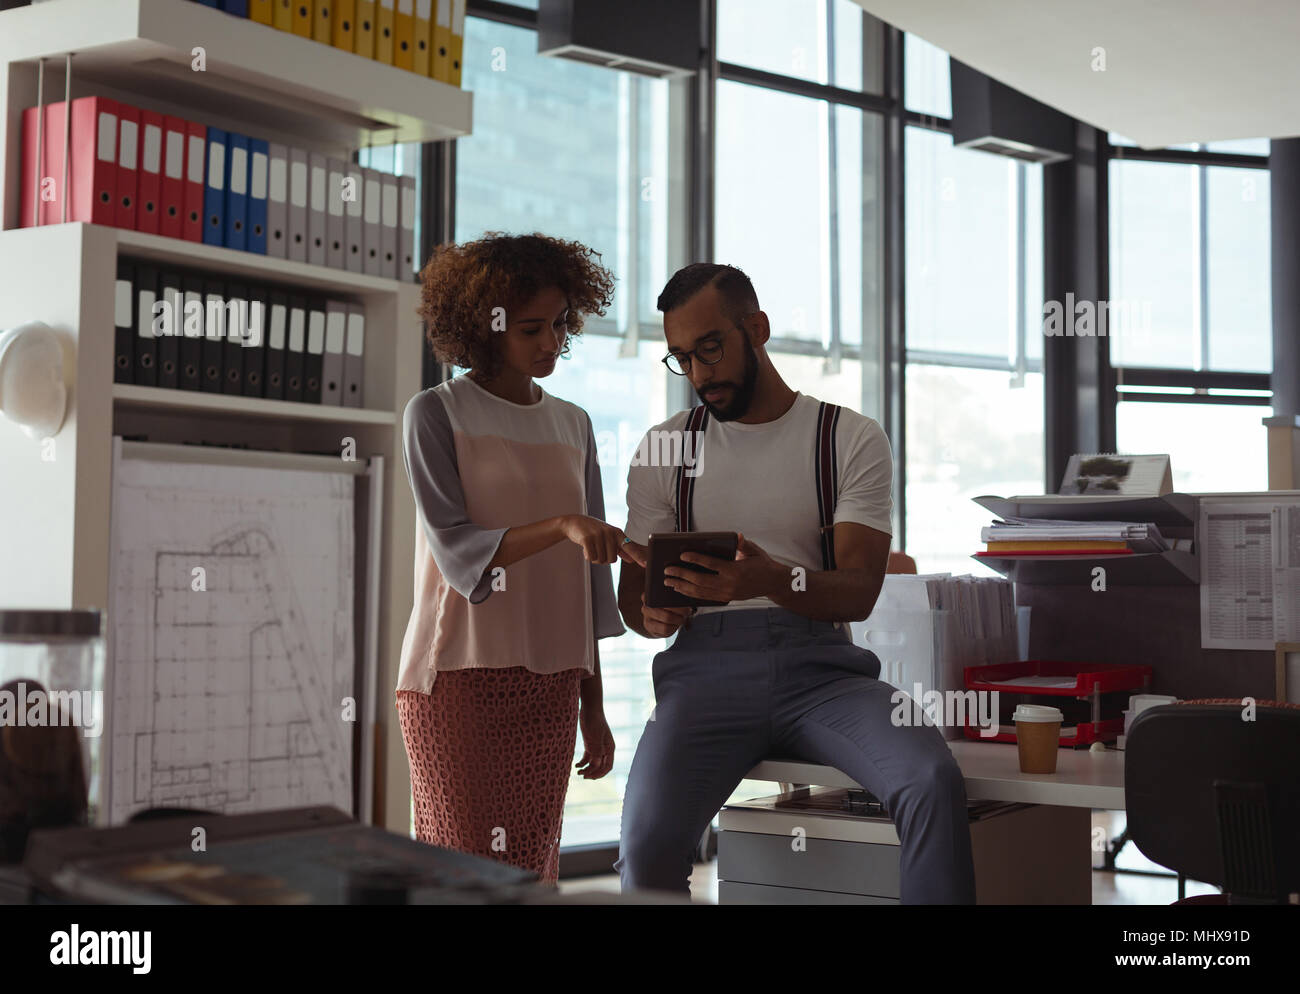 Architects discussing over digital tablet - Stock Image